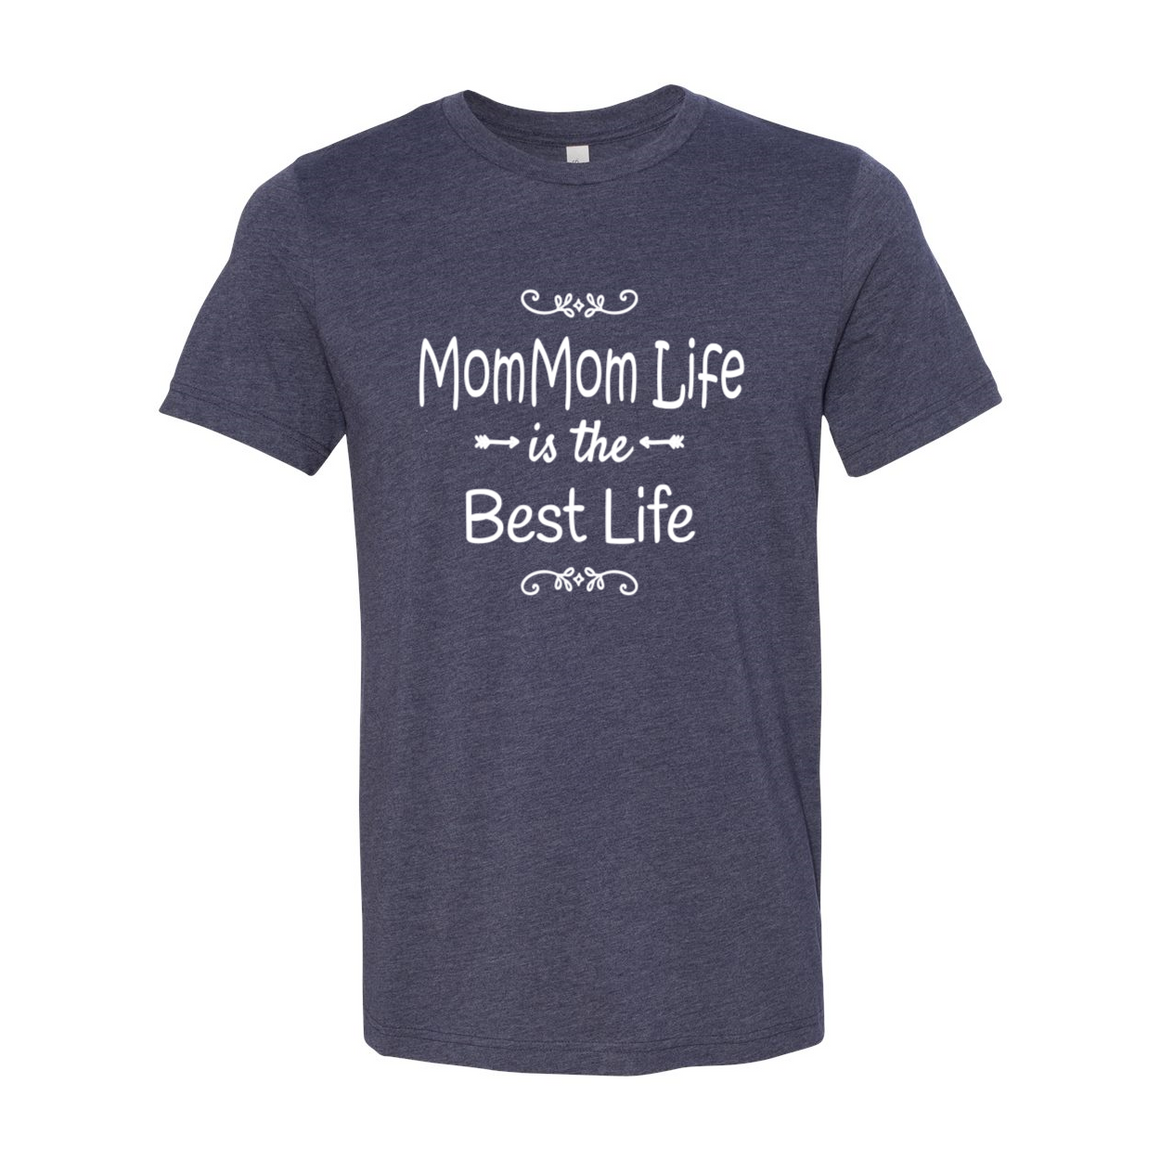 MomMom Life Is The Best Life Grandma Tshirt